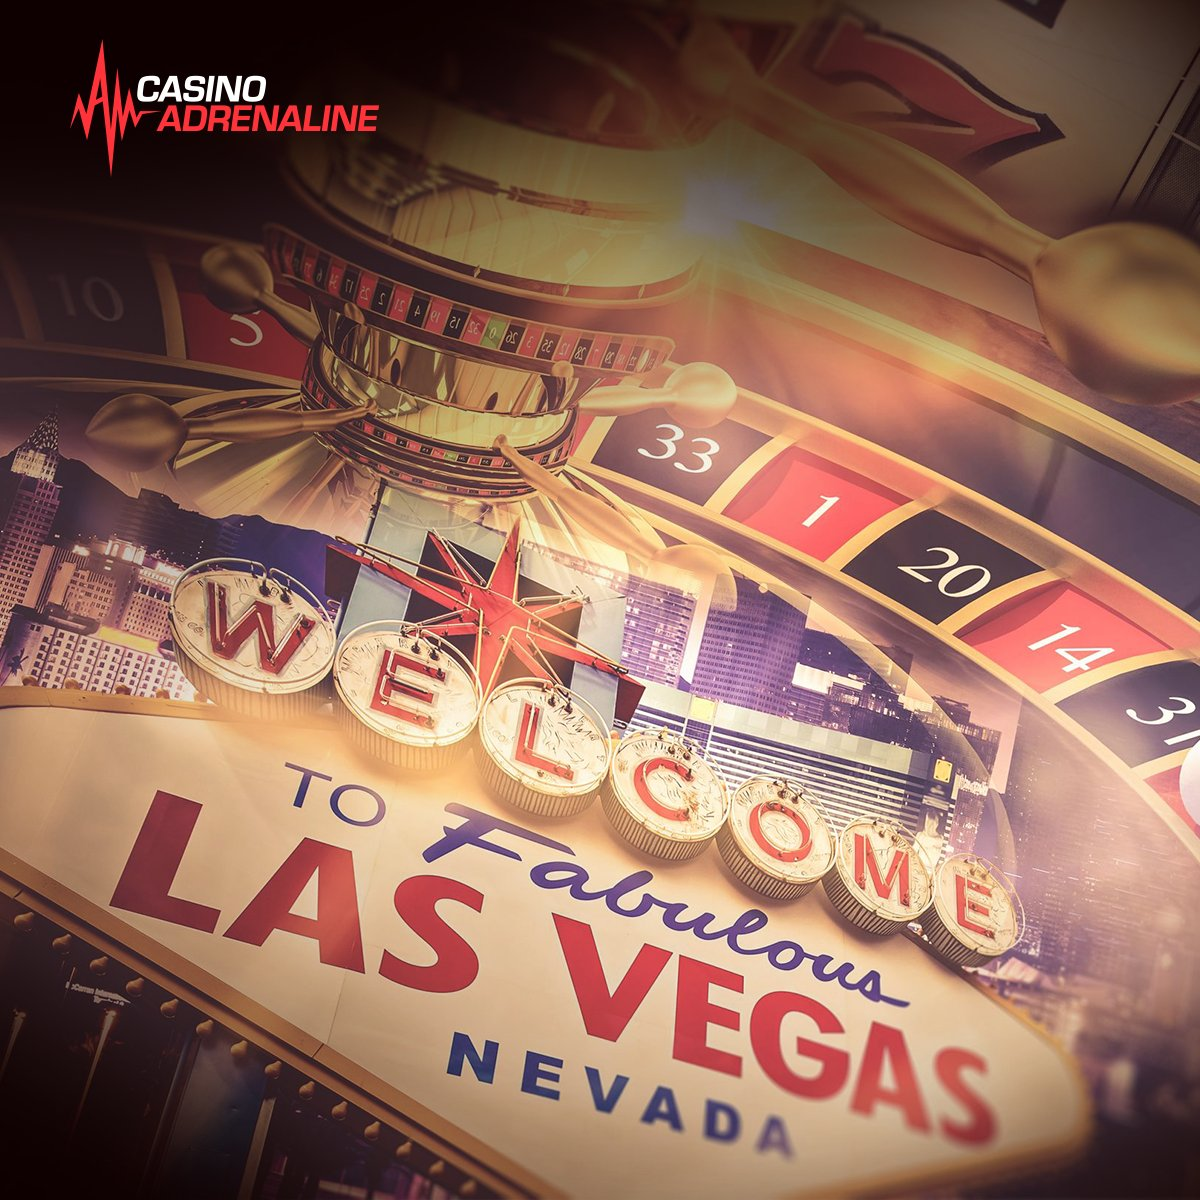 test Twitter Media - Have you ever been to Vegas?  If not, play this game and feel those Vegas Nights vibes! 😎😀 #CasinoAdrenaline #playthegame #casinoslots Play now: https://t.co/0xXmK3yBDF https://t.co/DxnU3EQLpg